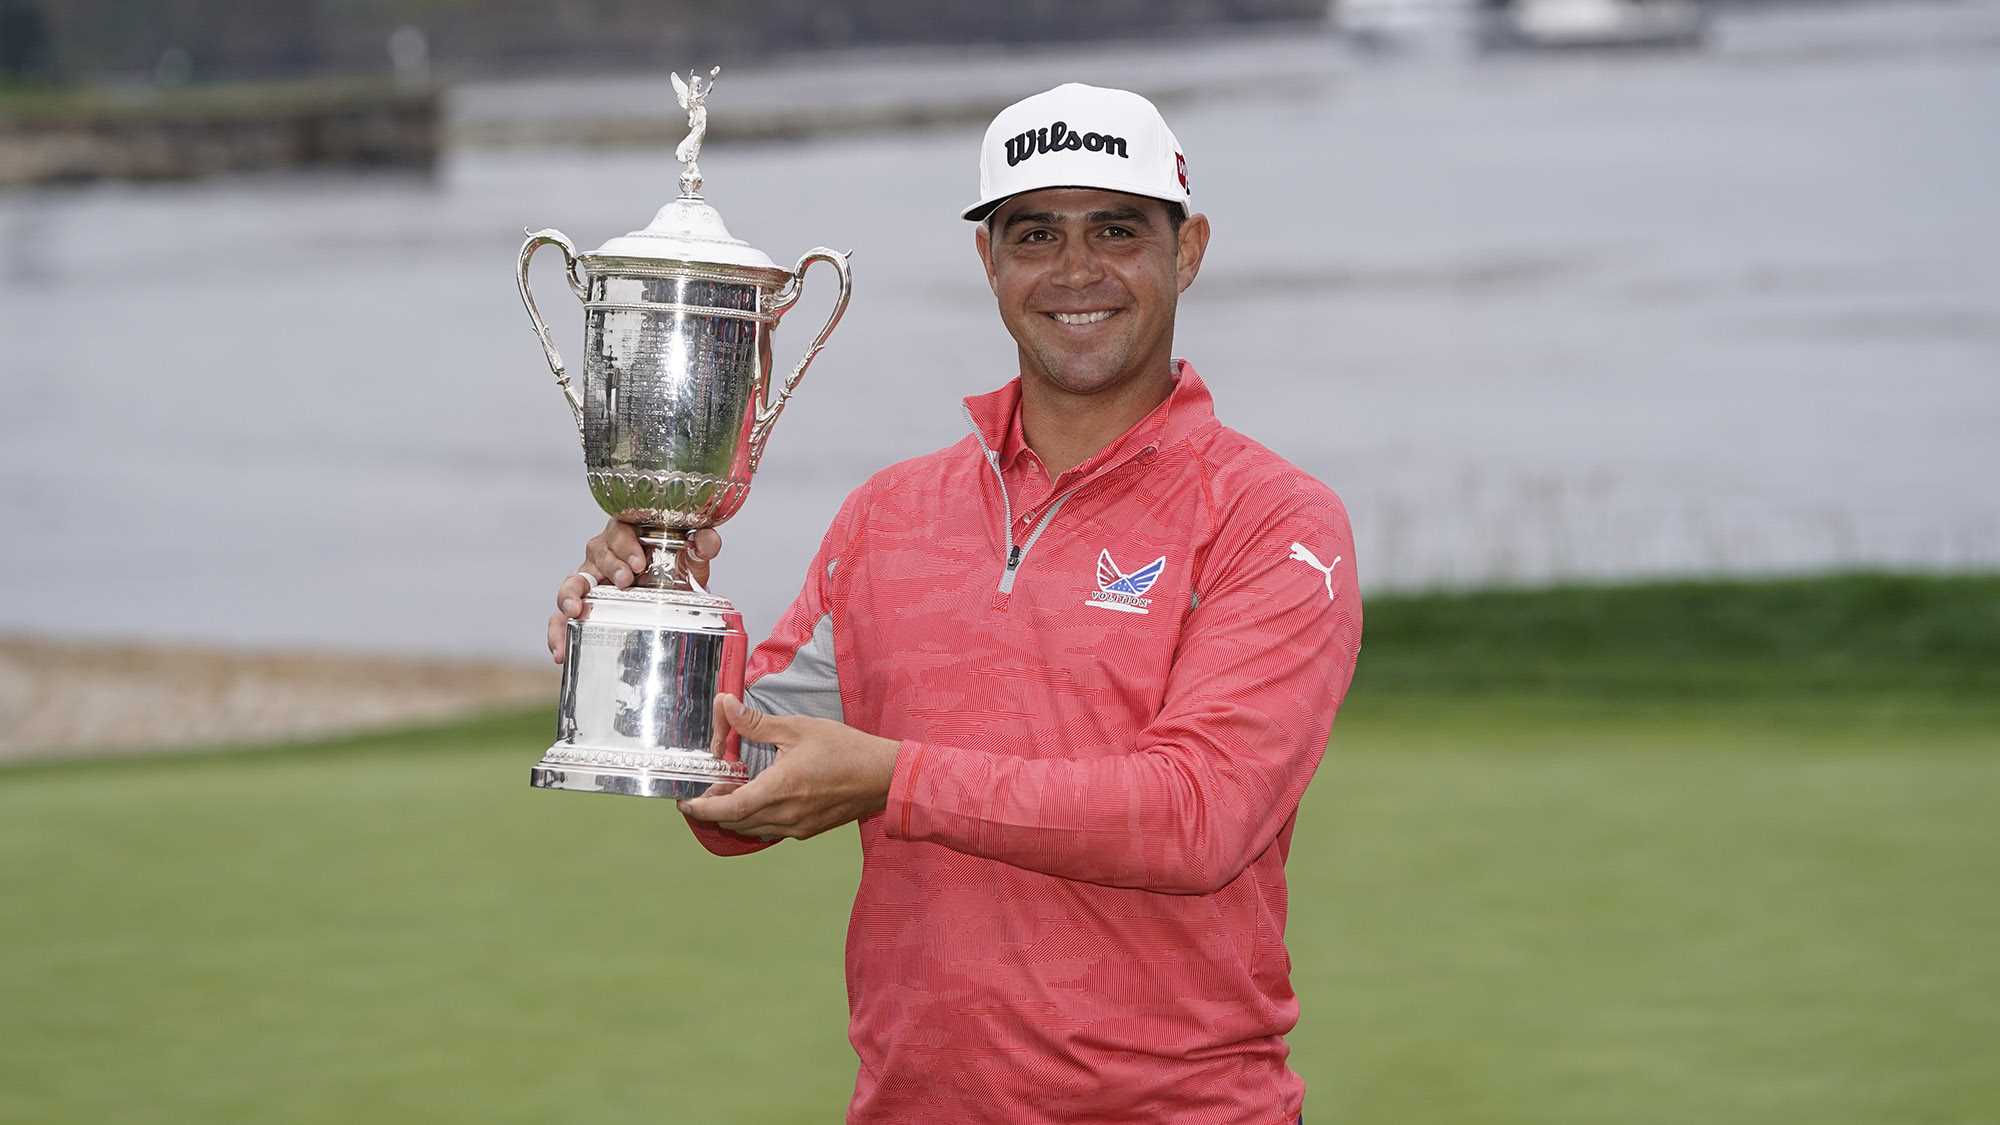 Who won the 119th US Open title recently?